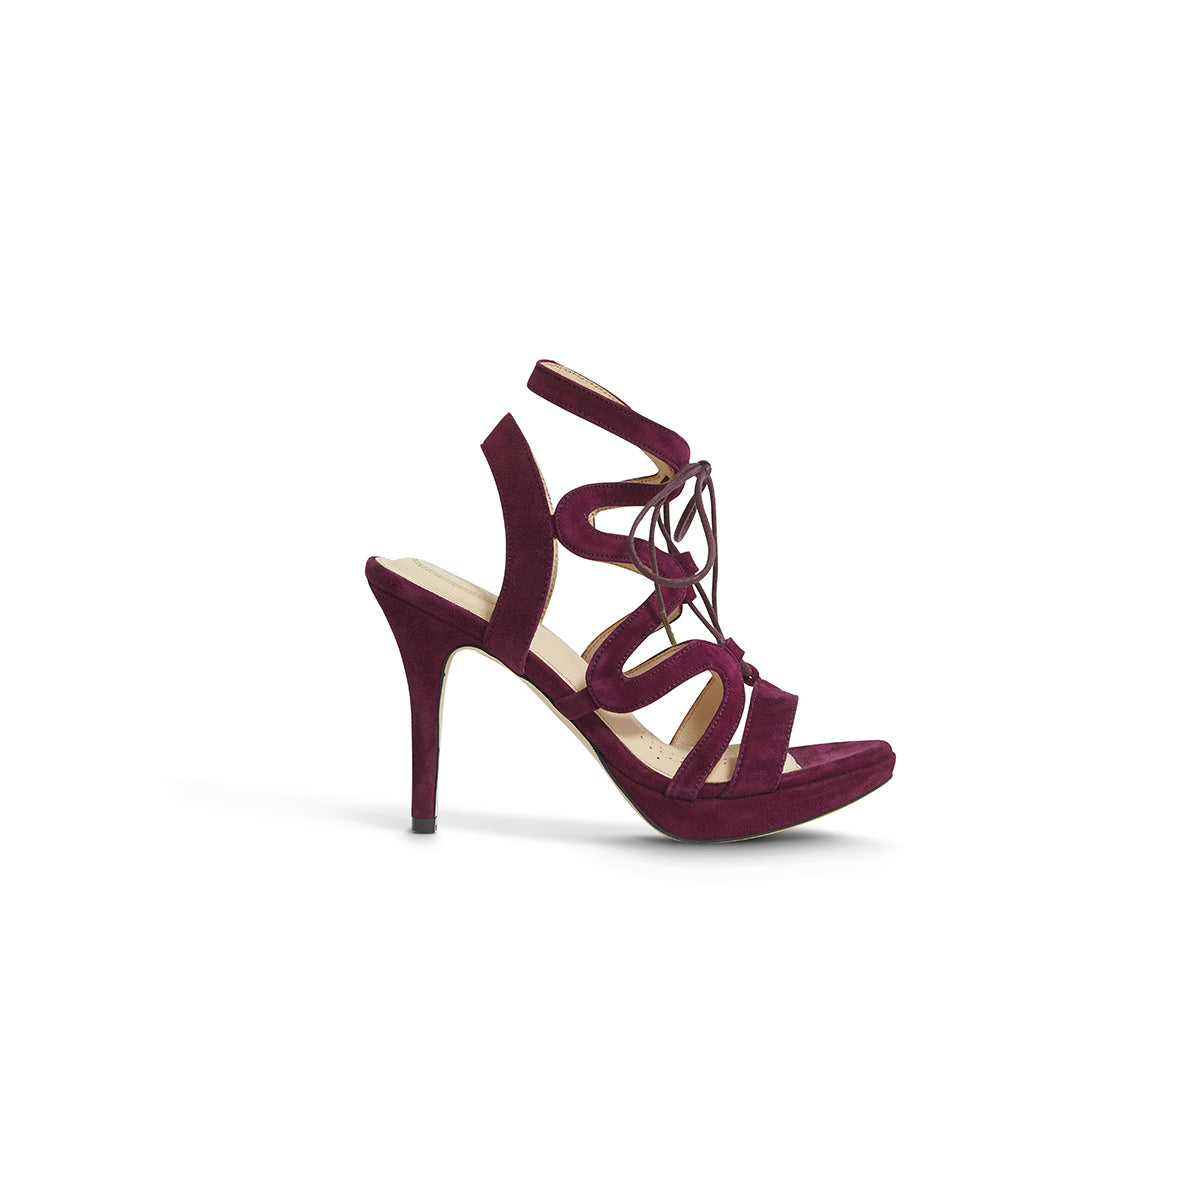 Chic Burgundy Suede